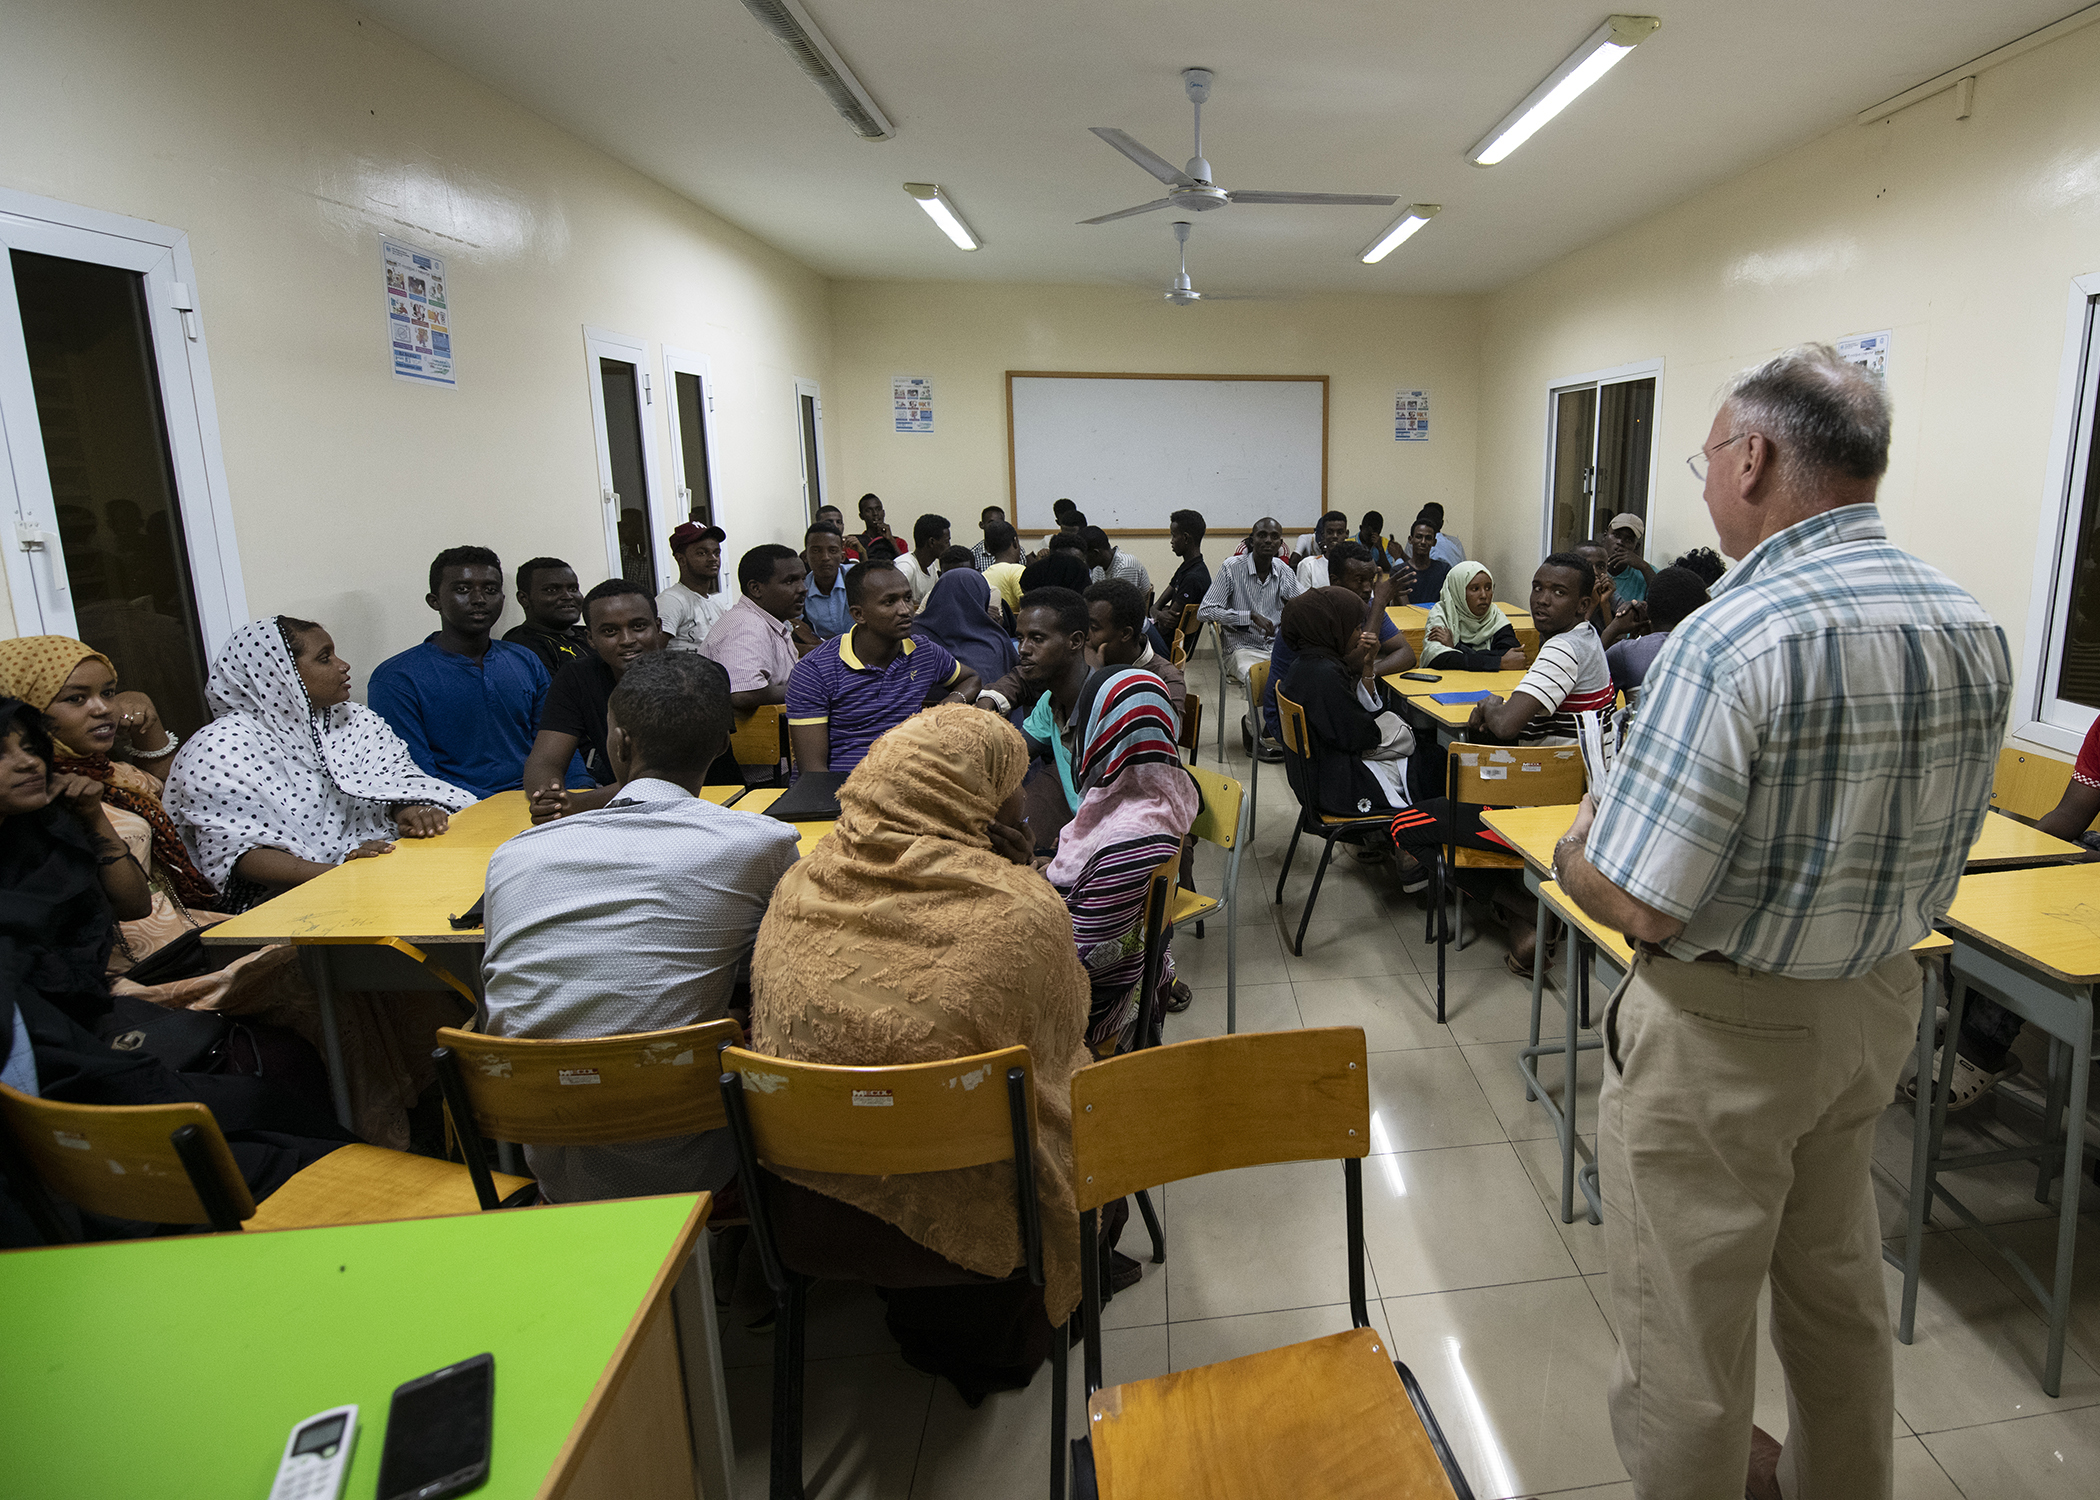 "U.S. Army Capt. Michael Volk, a civil affairs officer, 403rd Civil Affairs Battalion, Combined Joint Task Force-Horn of Africa, Camp Lemonnier, Djibouti, gives opening remarks during the first-ever English Discussion Group (EDG) in the neighborhood of Balbala, with more than 40 Djiboutian students Nov. 29, 2018. The EDG serves as a ""language laboratory"" in which students develop practical linguistic and rhetorical skills through relationship building and information exchange. (U.S. Air Force photo by Tech. Sgt. Shawn Nickel)"